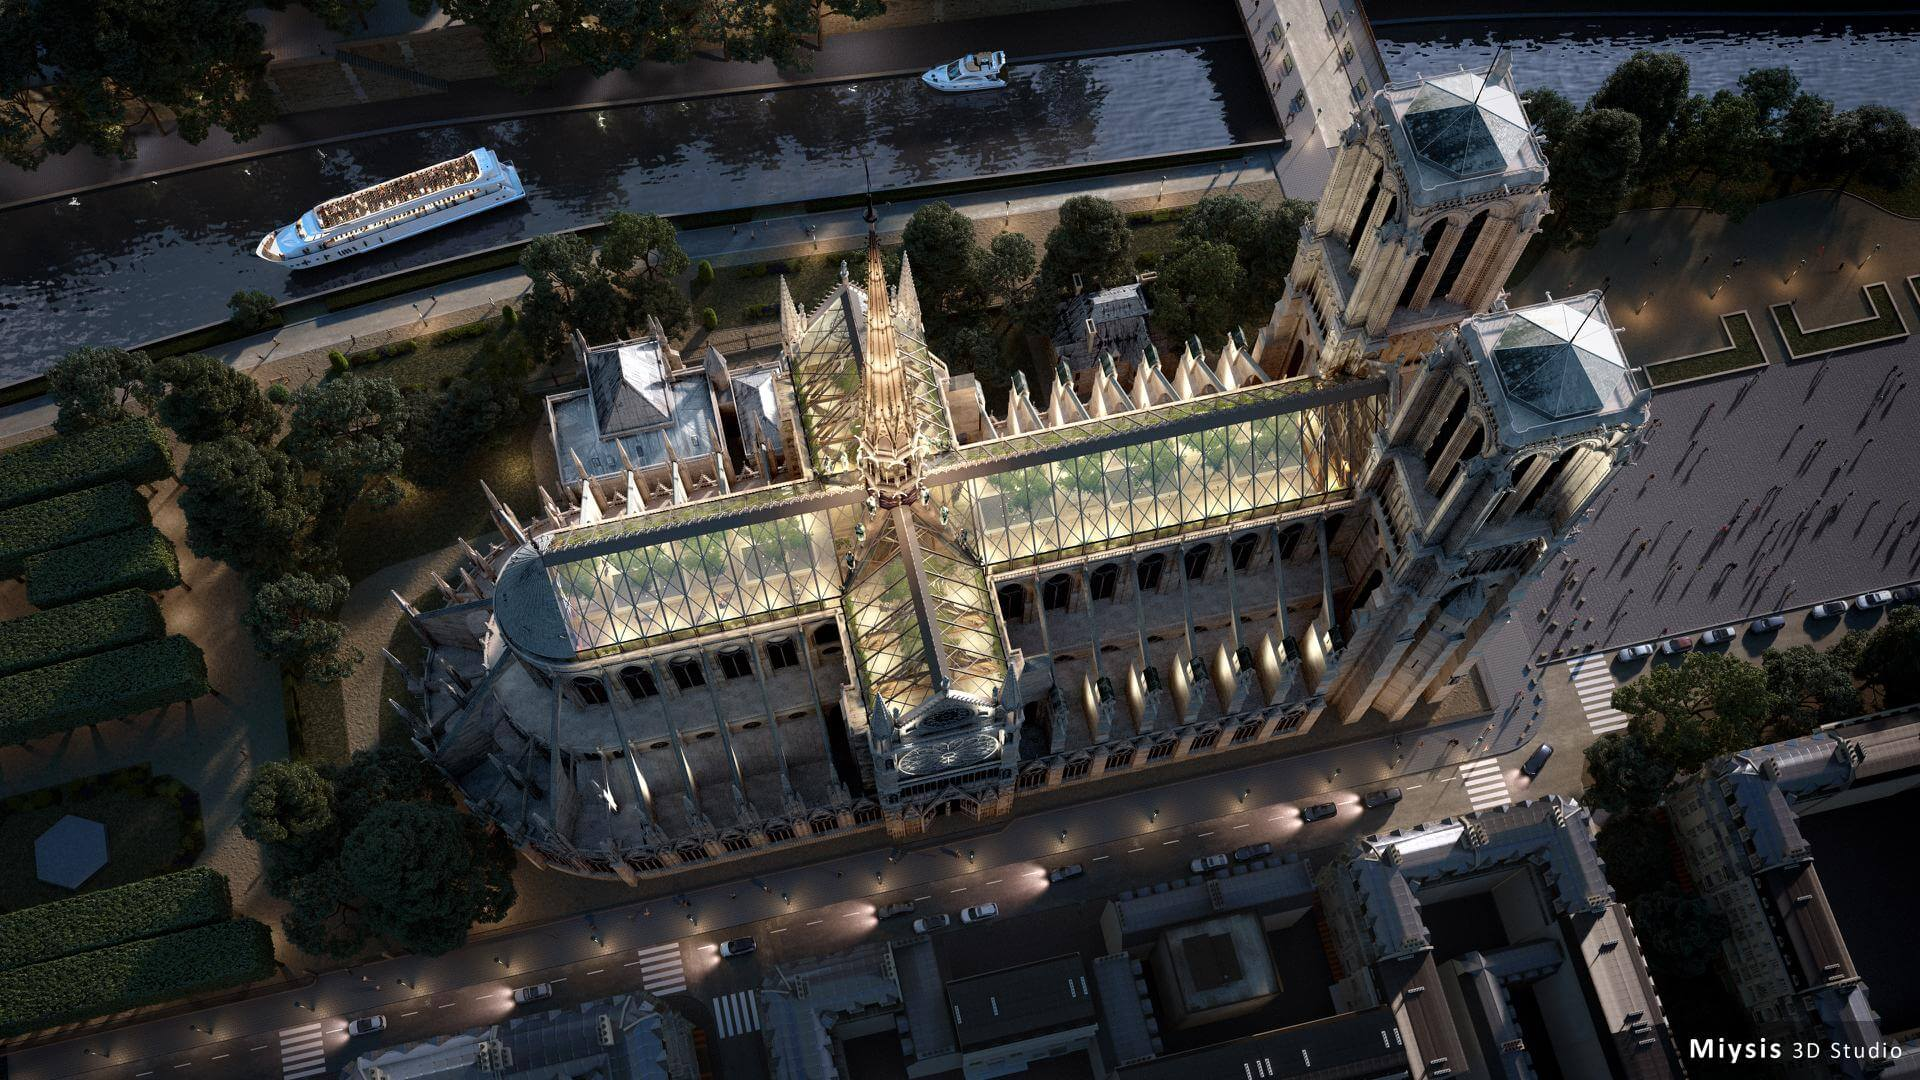 """Notre Dame de Paris aerial view"" render by Miysis 3D."